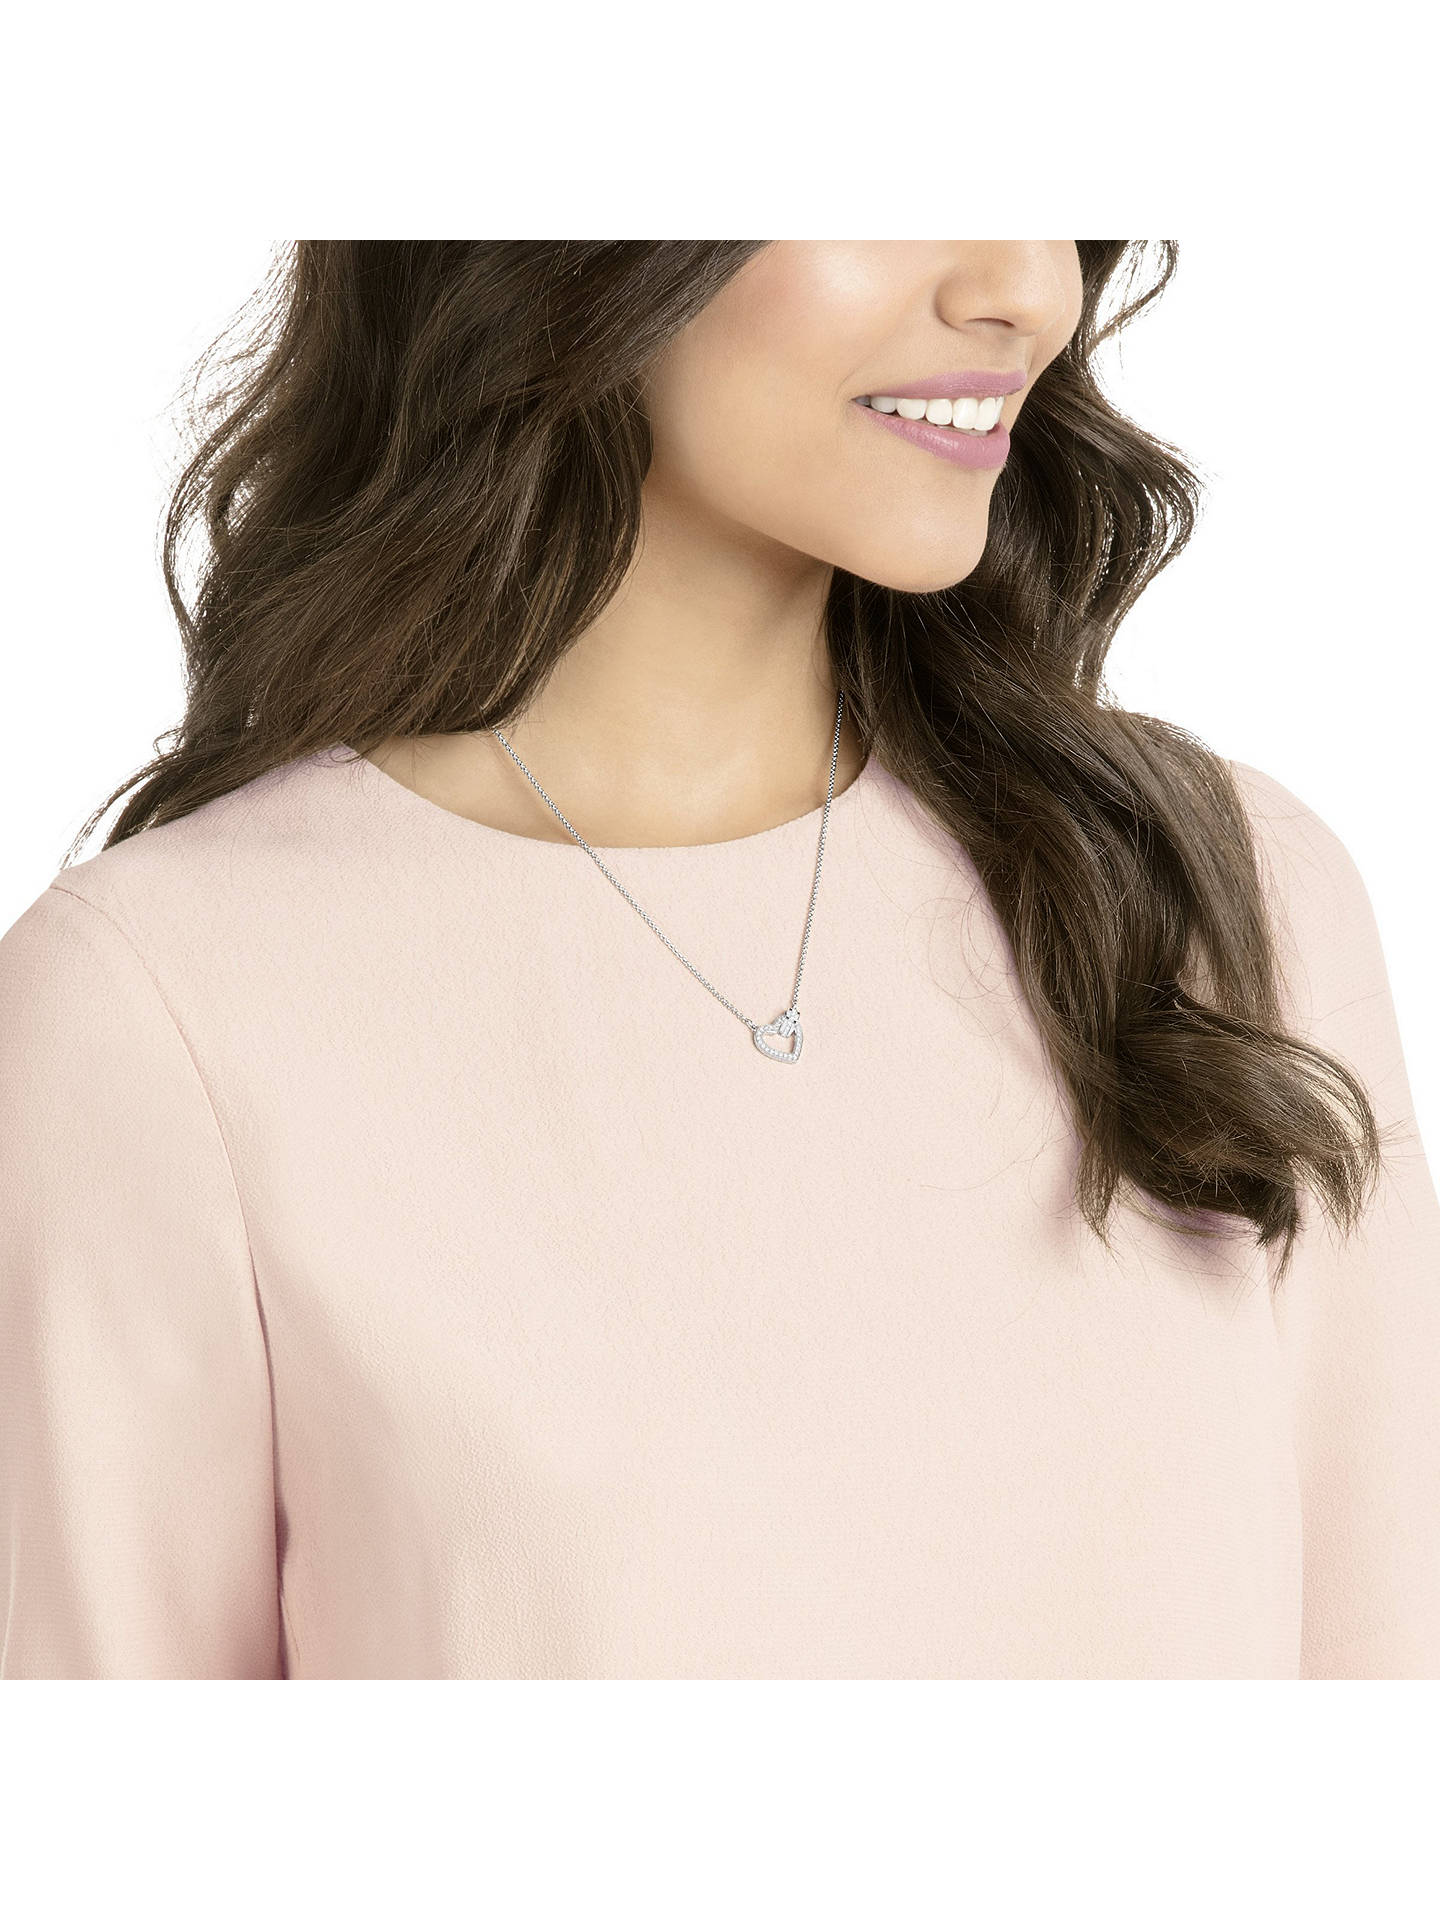 Buy Swarovski Lovely Crystal Heart Pendant Necklace, Silver Online at johnlewis.com